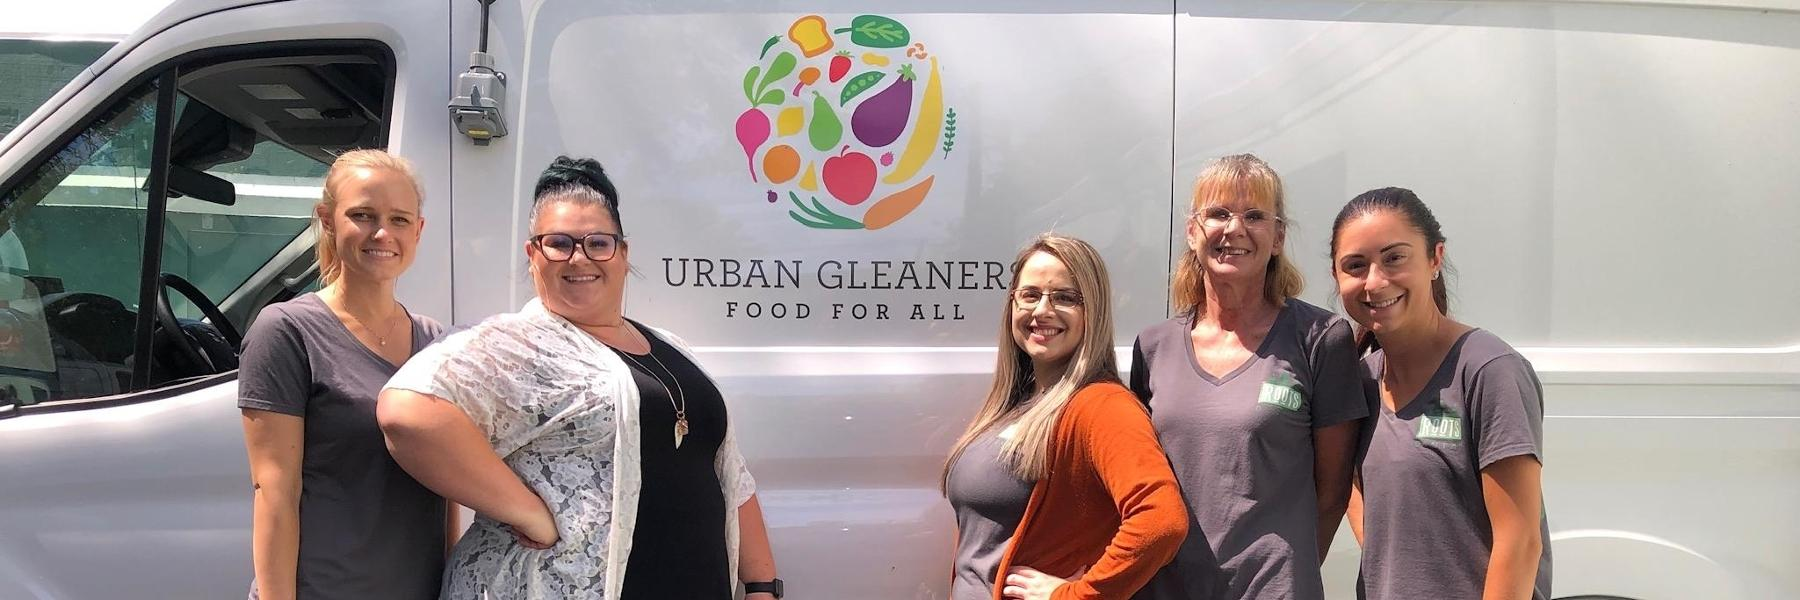 The team at Roots Dental - Powell in front of the Urban Gleaners delivery van in Portland, OR.